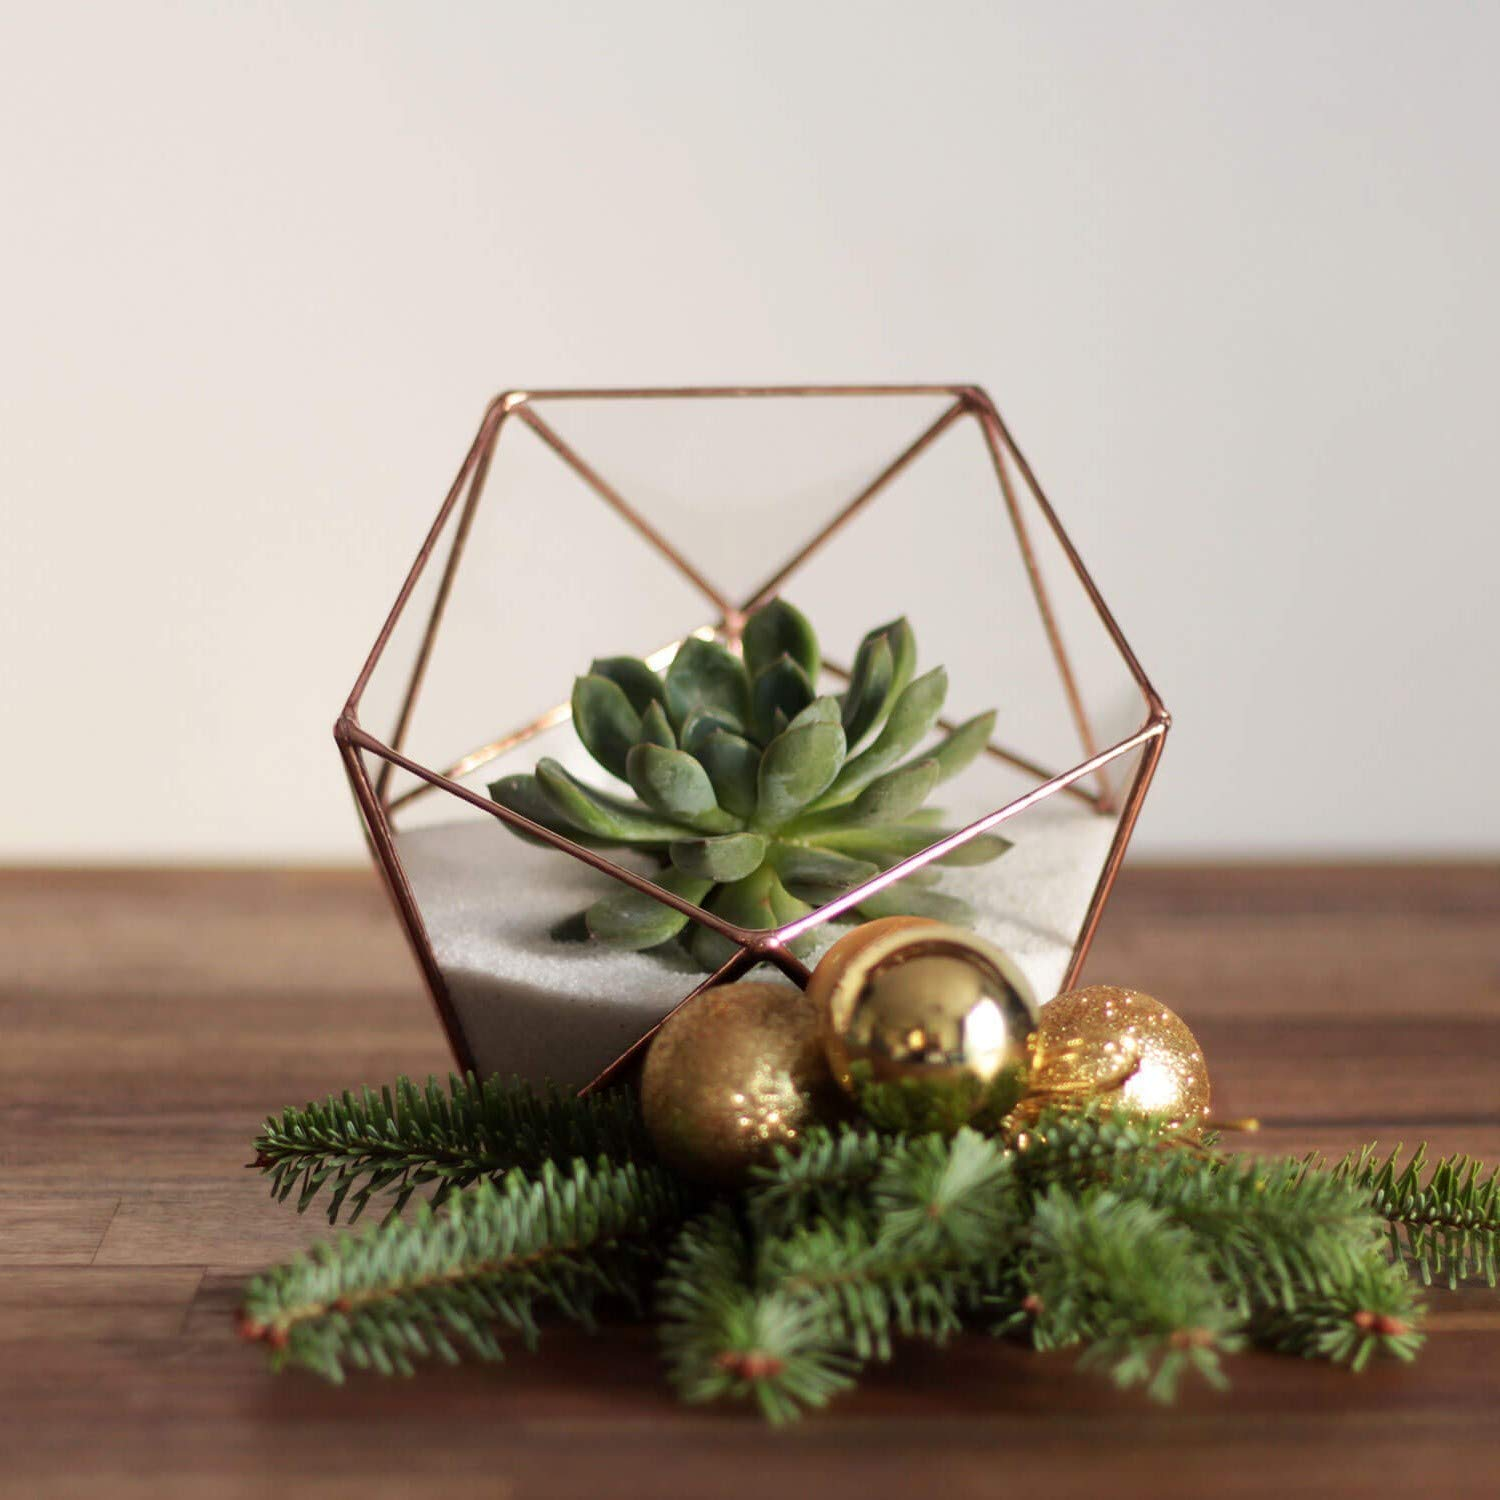 Valentines Day Gift Gift for Gardener Wedding Decor Copper, Silver, Black Clear Glass Geometric Terrarium Container Table Centerpiece Modern Planter for Indoor Gardening Dodecahedron